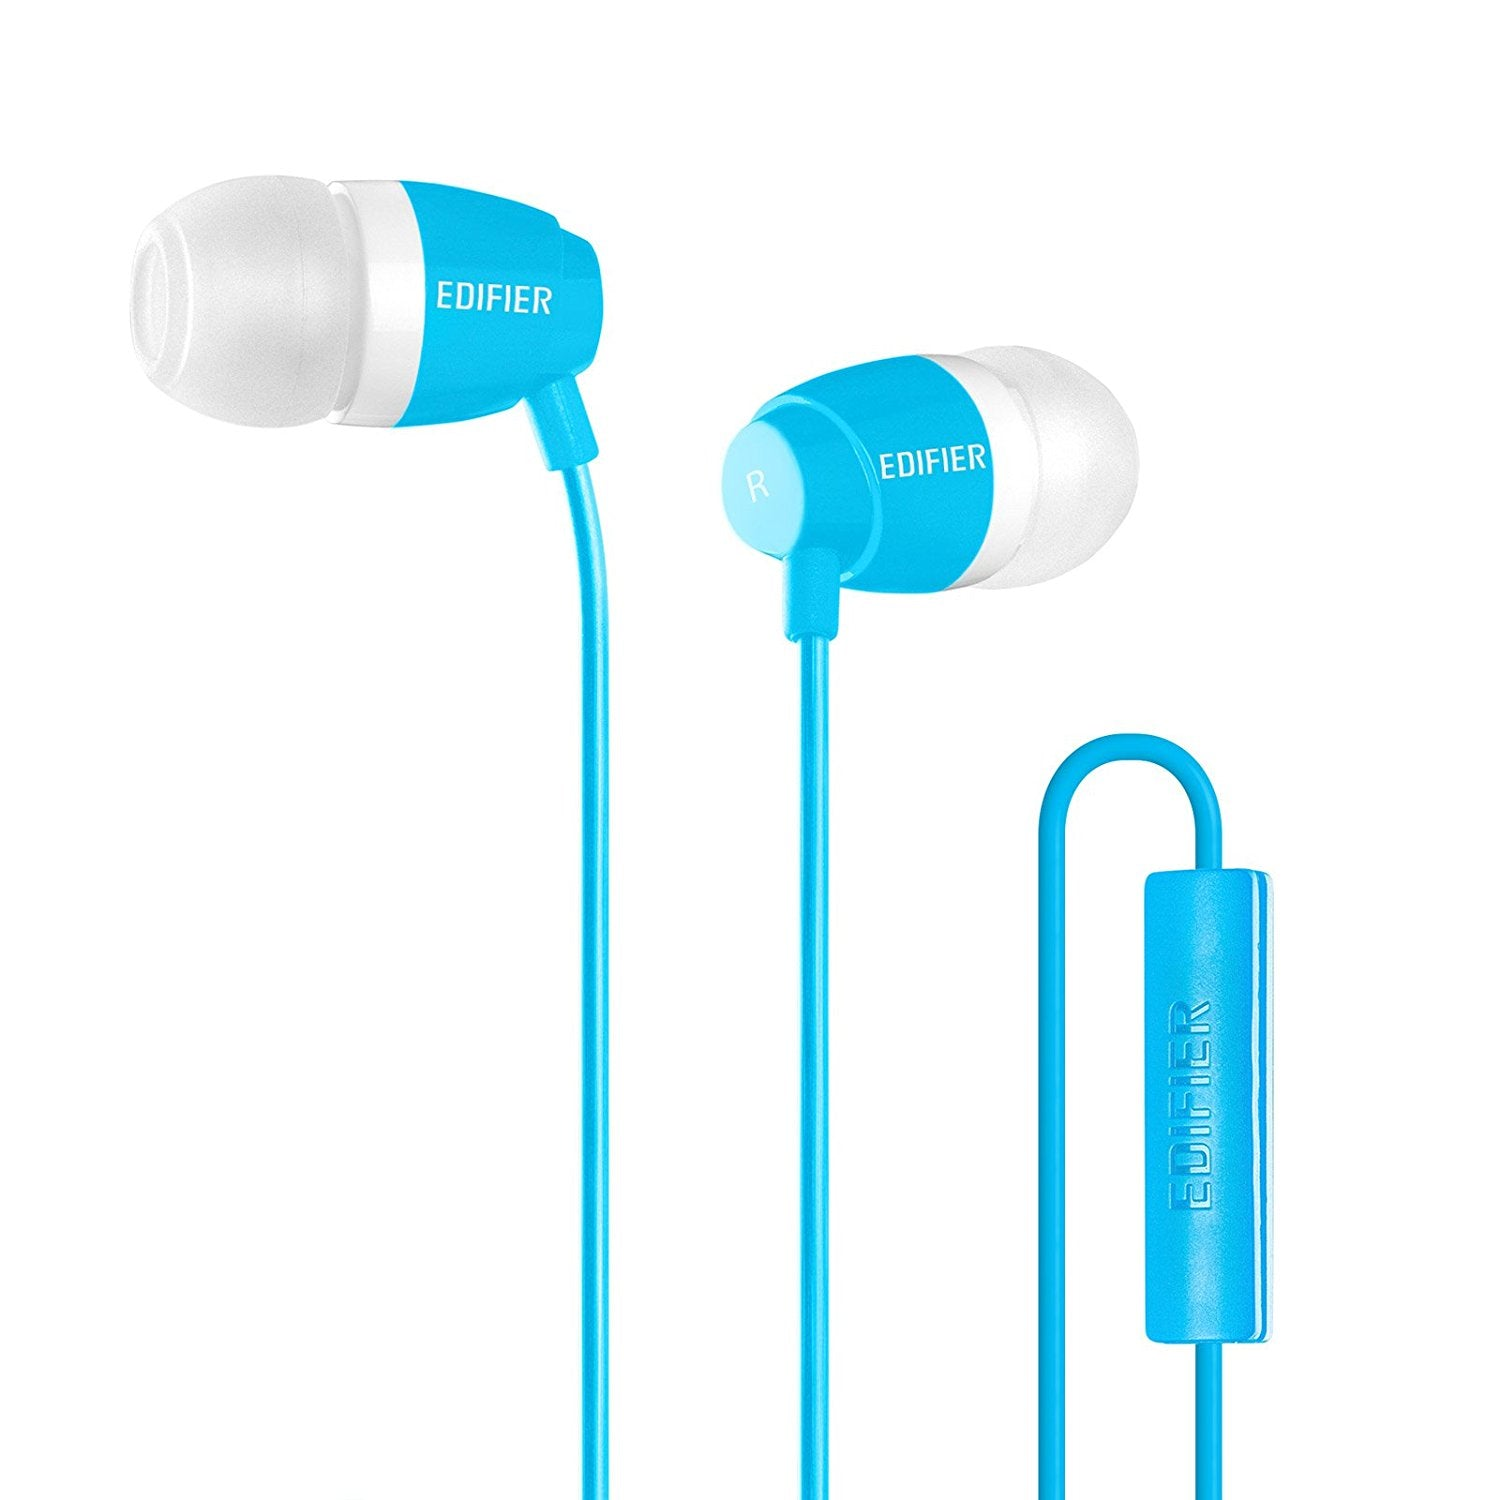 Edifier P210 In-ear Headphones with Mic for Mobile Headset